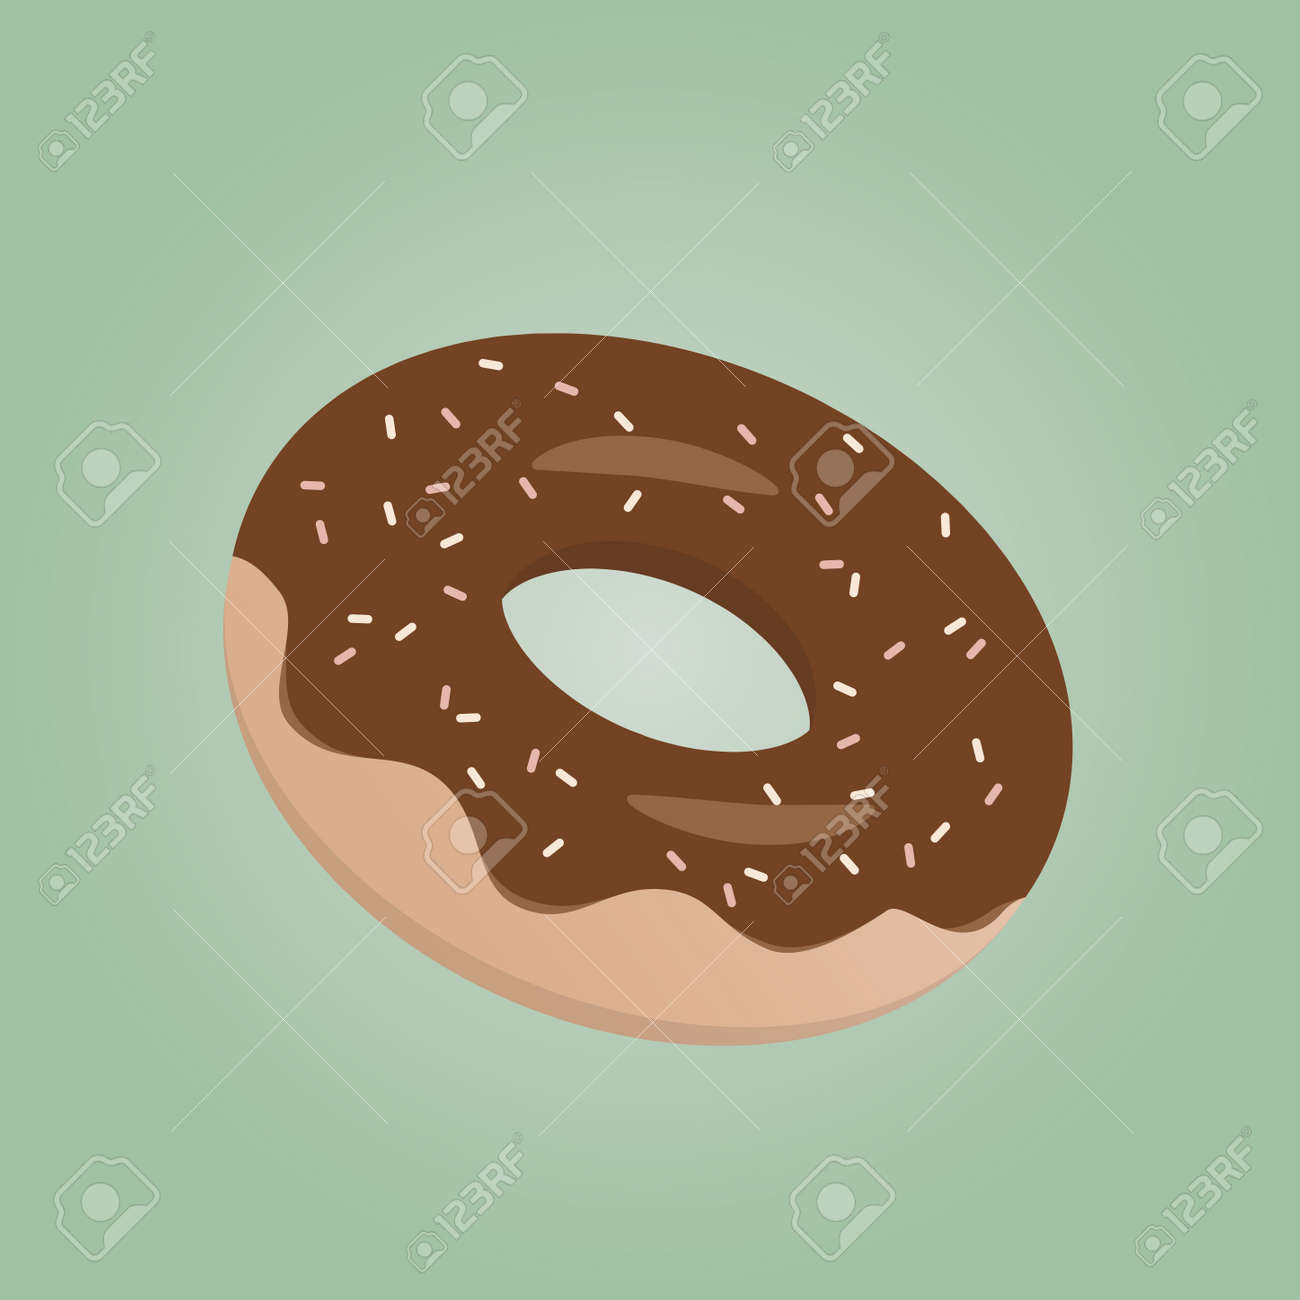 delicious donut with chocolate glaze Standard-Bild - 84826025